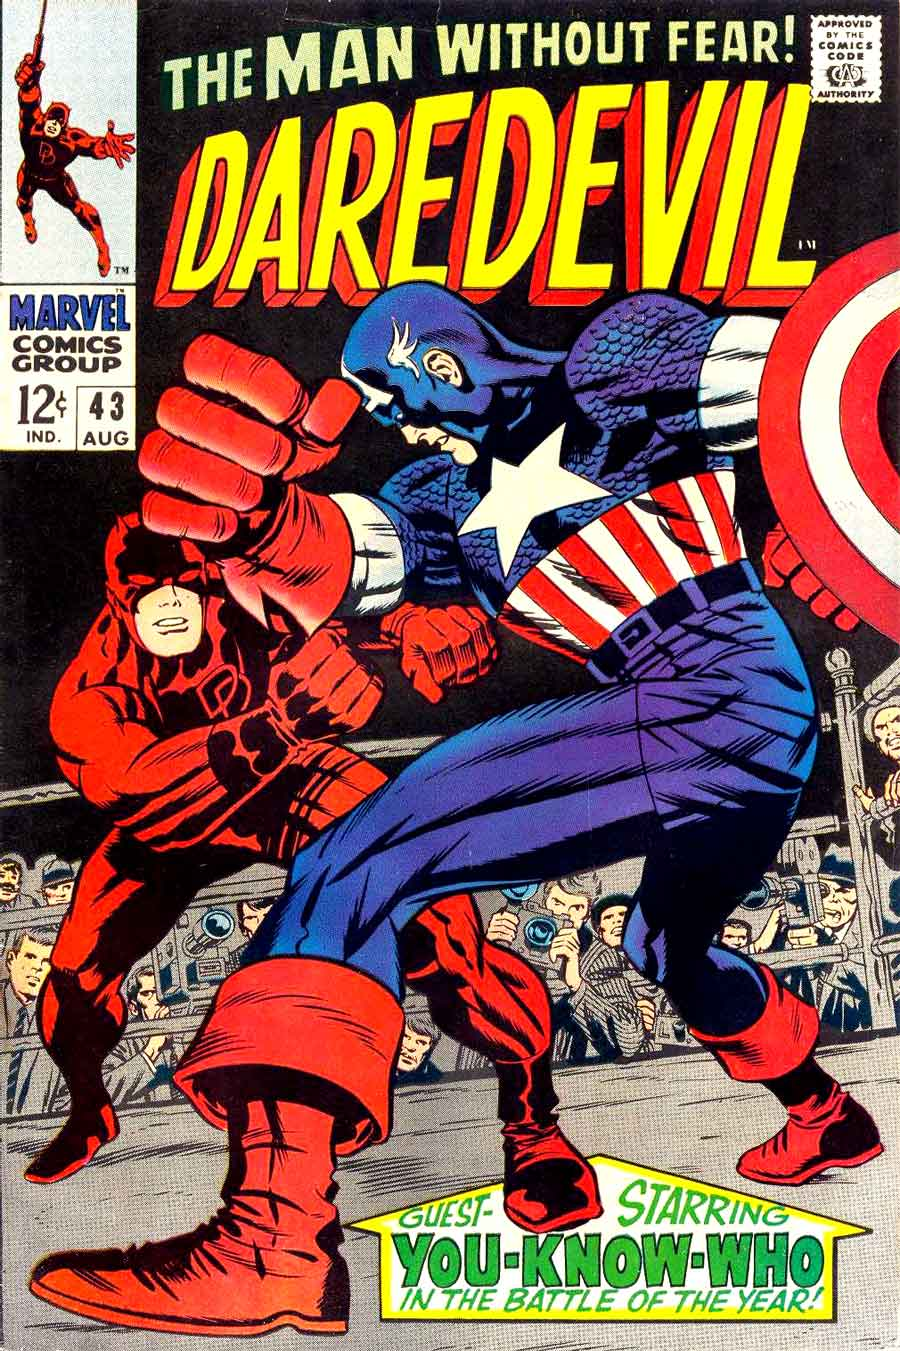 Daredevil v1 #43 marvel 1960s silver age comic book cover art by Jack Kirby